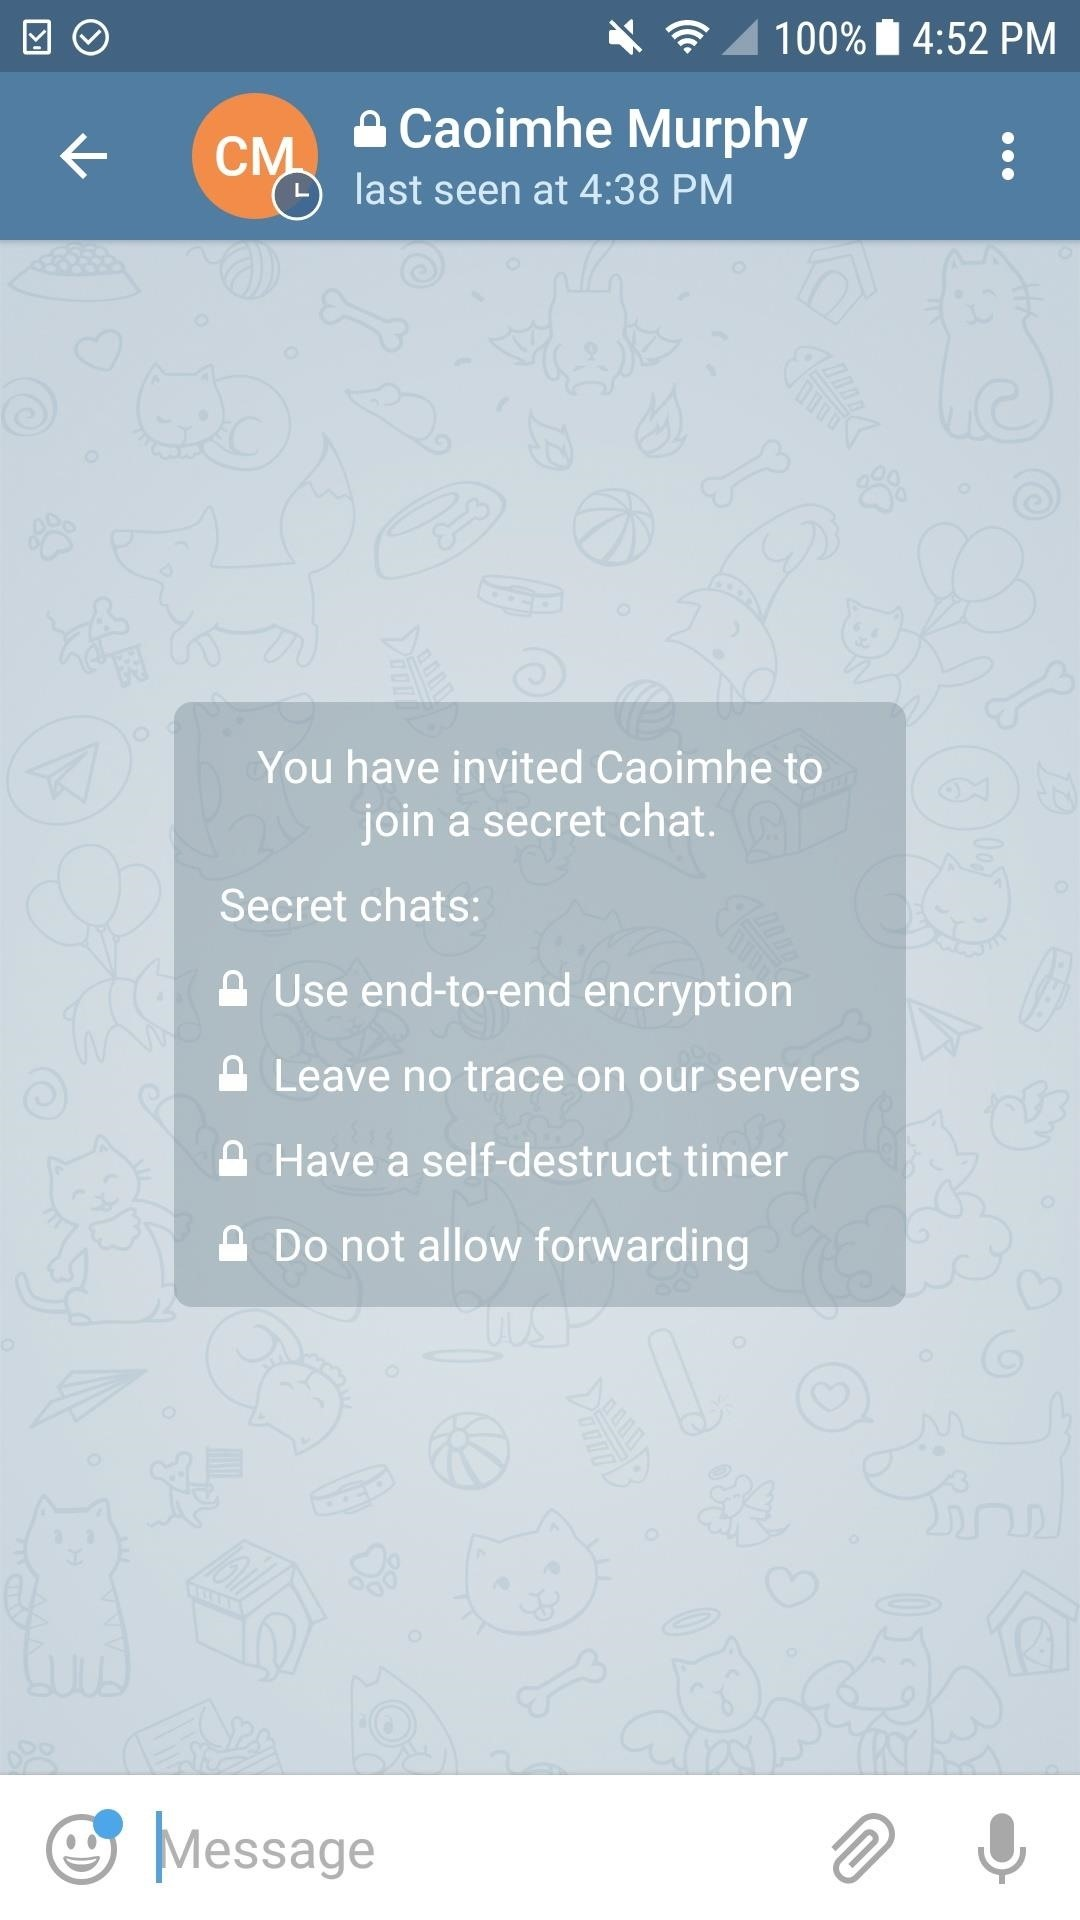 Telegram 101: How to Enable End-to-End Encryption for Your Chats